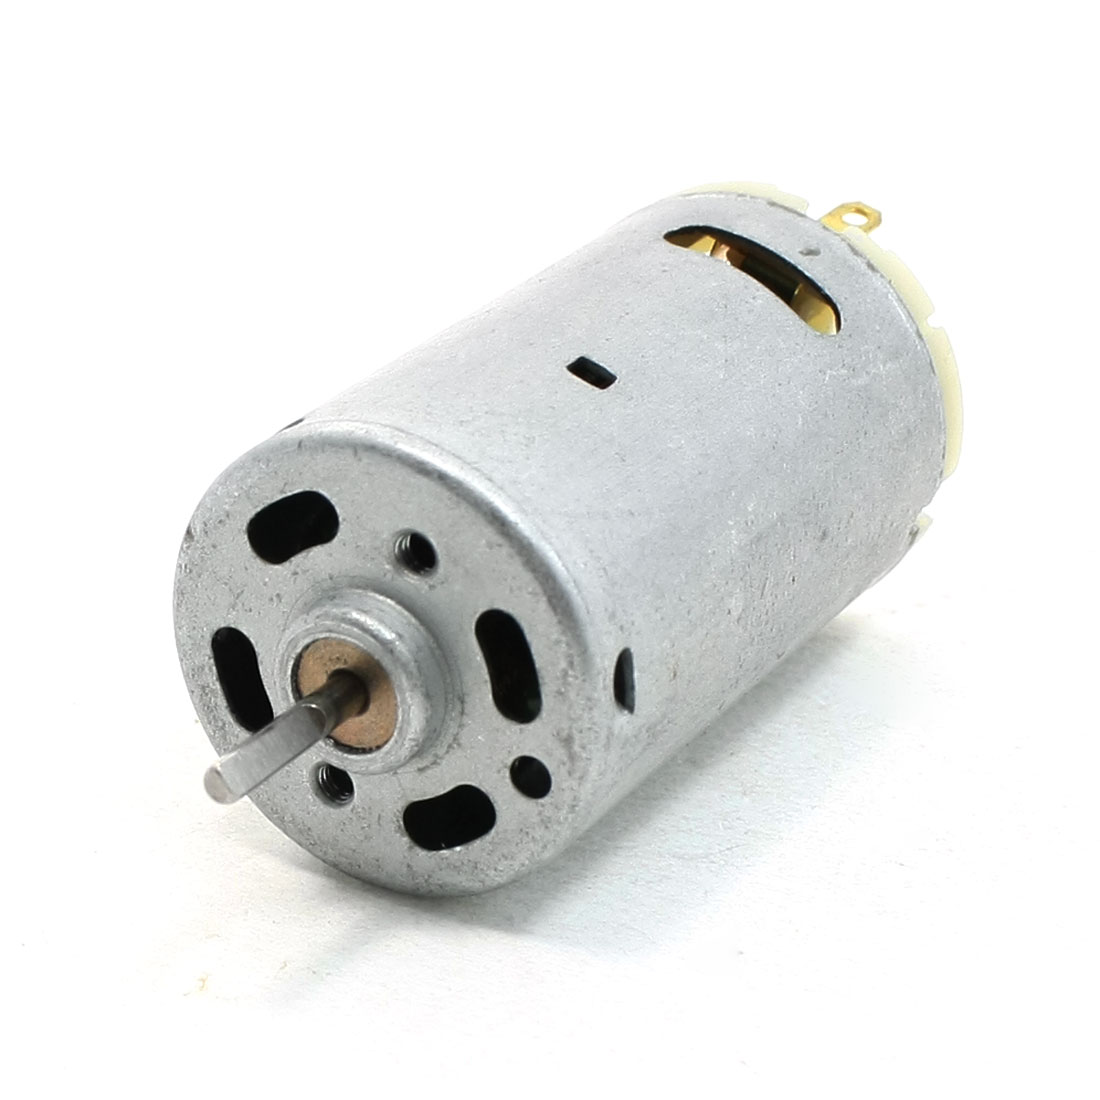 5700RPM 12V Volts Cylinder Magnetic Electric Directly Current Motor